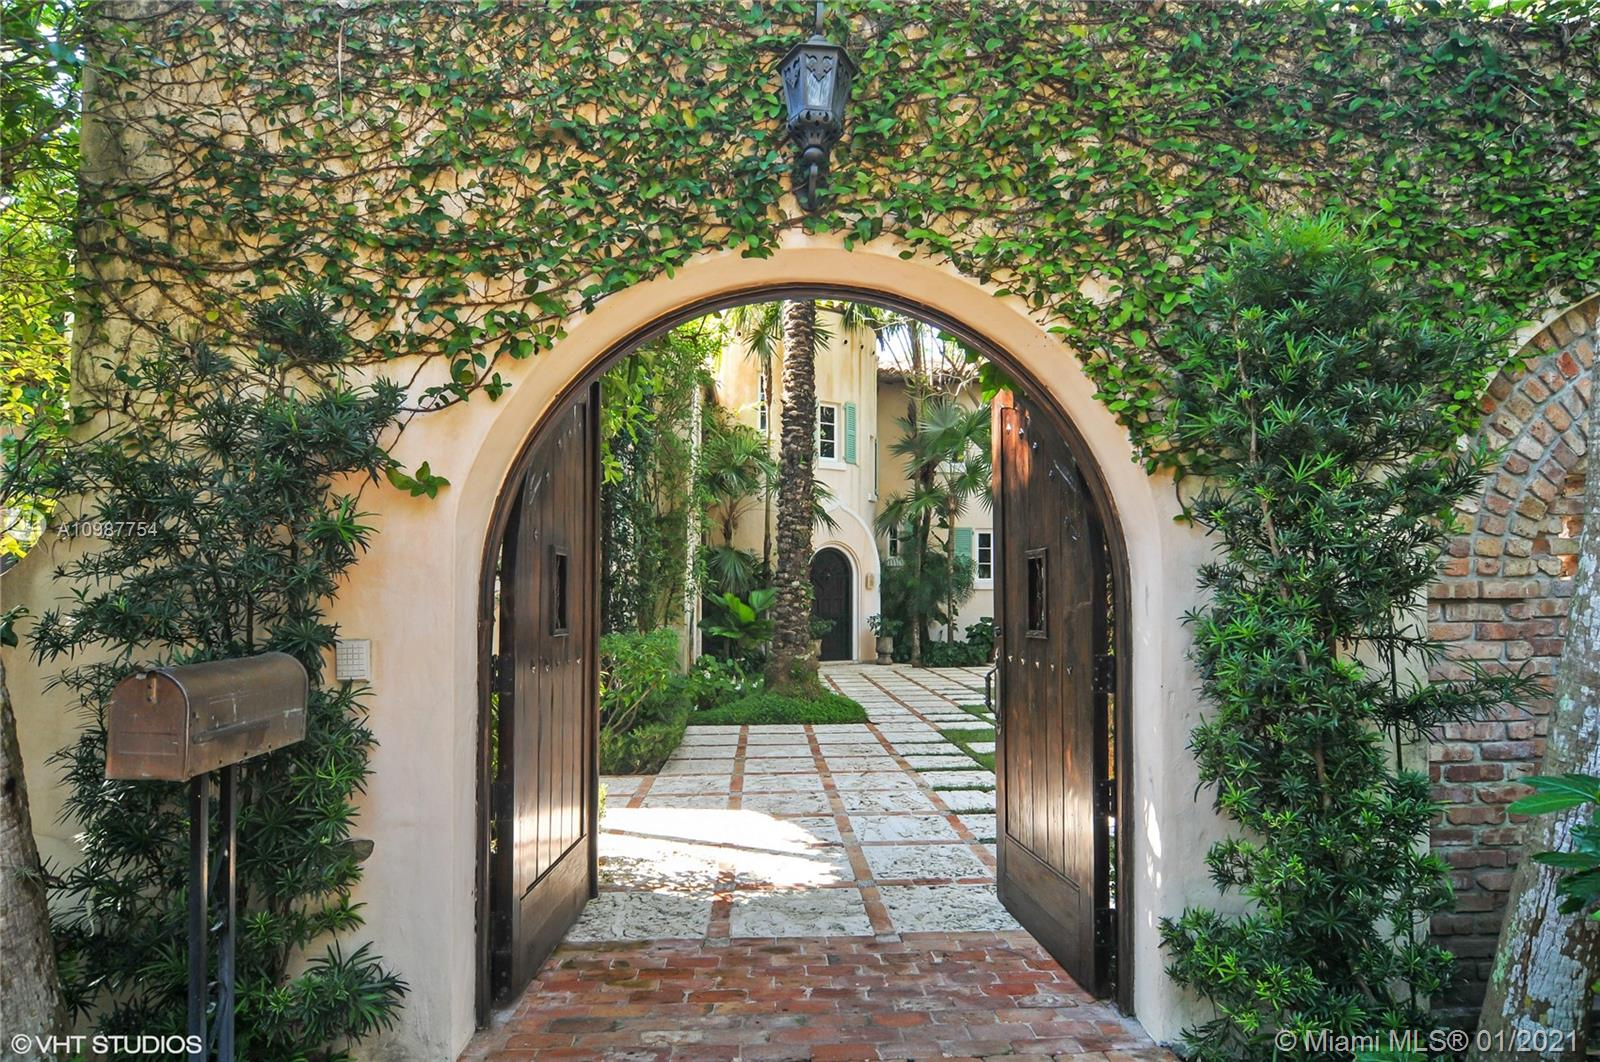 Designed by Walter DeGarmo, one of Miami's most historically significant architects, circa 1929, restored, maintained and updated to the highest standards of the 21st century, this residence of classic lines sits in one of Coconut Grove's finest in-town, gated addresses. This Mediterranean revival villa, on over ¾ acre, is a treasure of Coconut Grove. The charming foyer and formal living room with open wood beam ceilings, wood burning fireplace and stone mantelpiece, look out to gorgeous grounds and sparkling Biscayne Bay beyond. Also, there is a formal dining room , formal breakfast room, three family bedrooms with en-suite baths, plus a stunning, lavishly scaled master bedroom suite. Add a kitchen to delight, staff bedrm & bath, 2 car garage, and 1 bedrm guest house. To see is to buy!